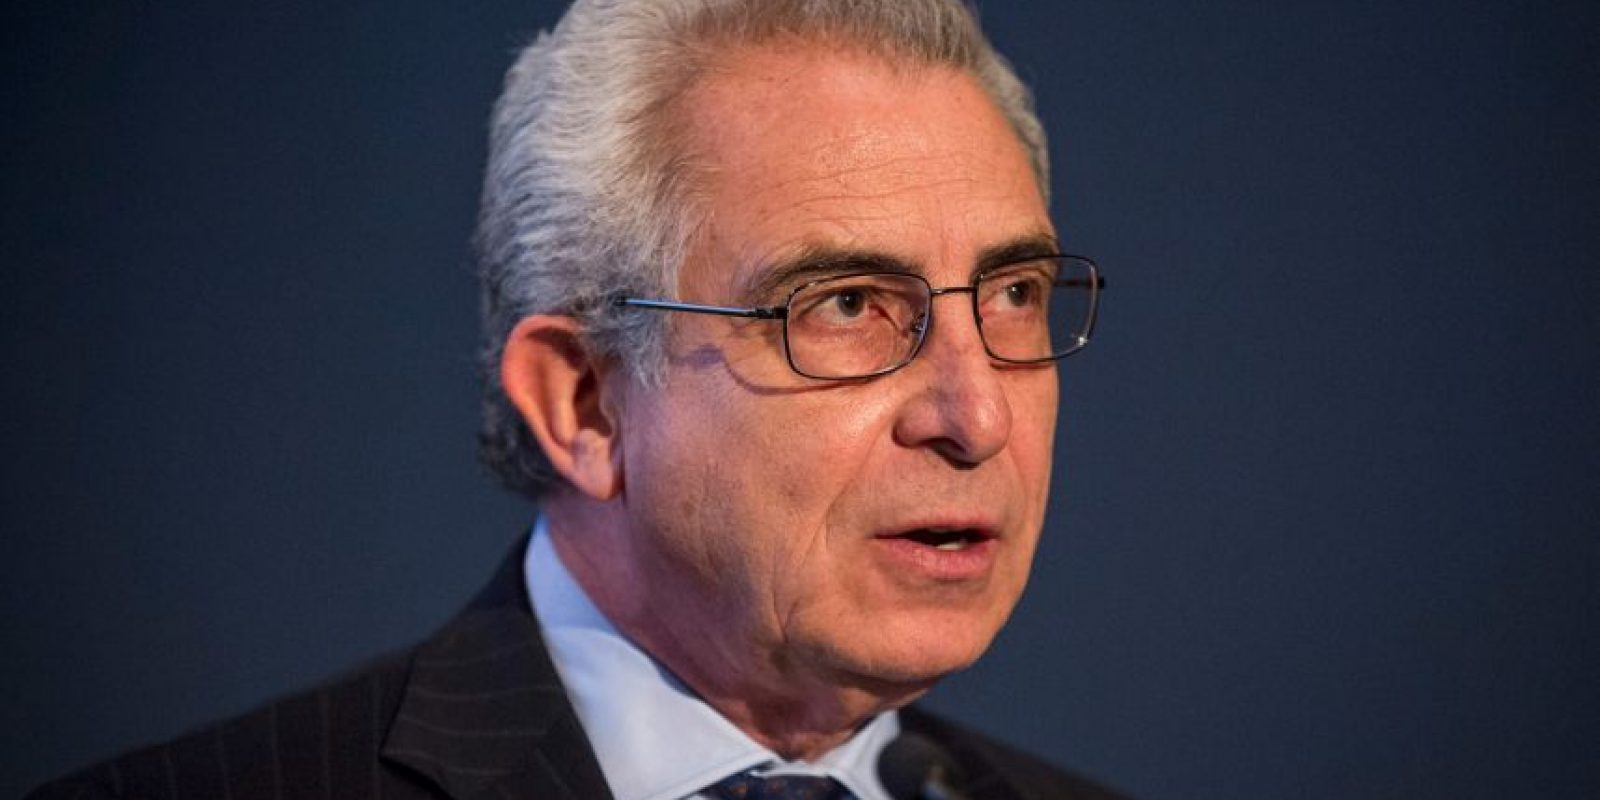 Se trata del exprsidente mexicano Ernesto Zedillo Foto: Getty Images